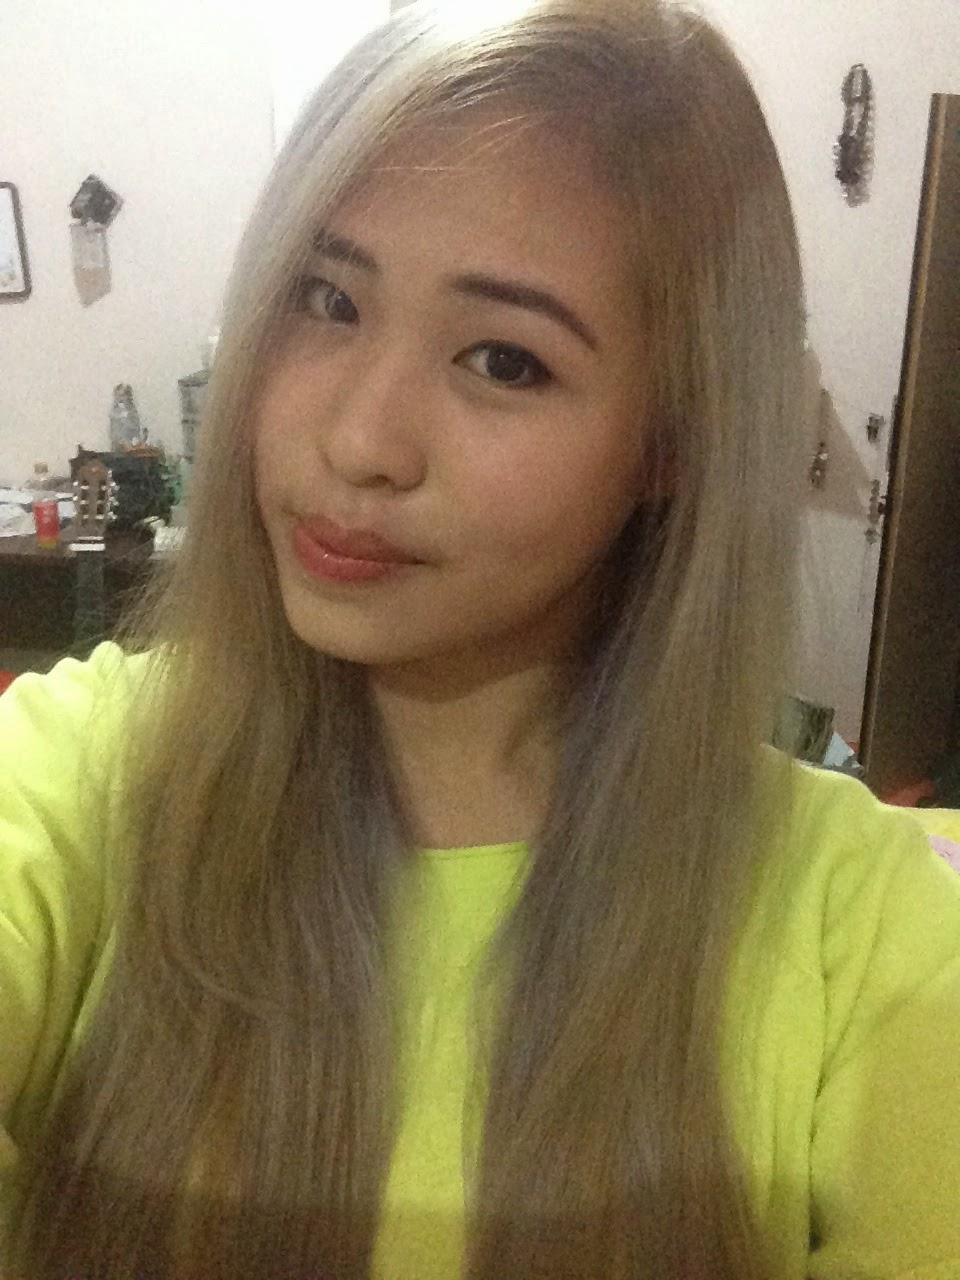 Ivys Stories October 2014 Semir Rambut Top Sorry For The Quality But Turns Out I Didnt Have Pictures Of My Ash Brown Greyish Colour Hair Like This So Much Too Bad Phone Decided